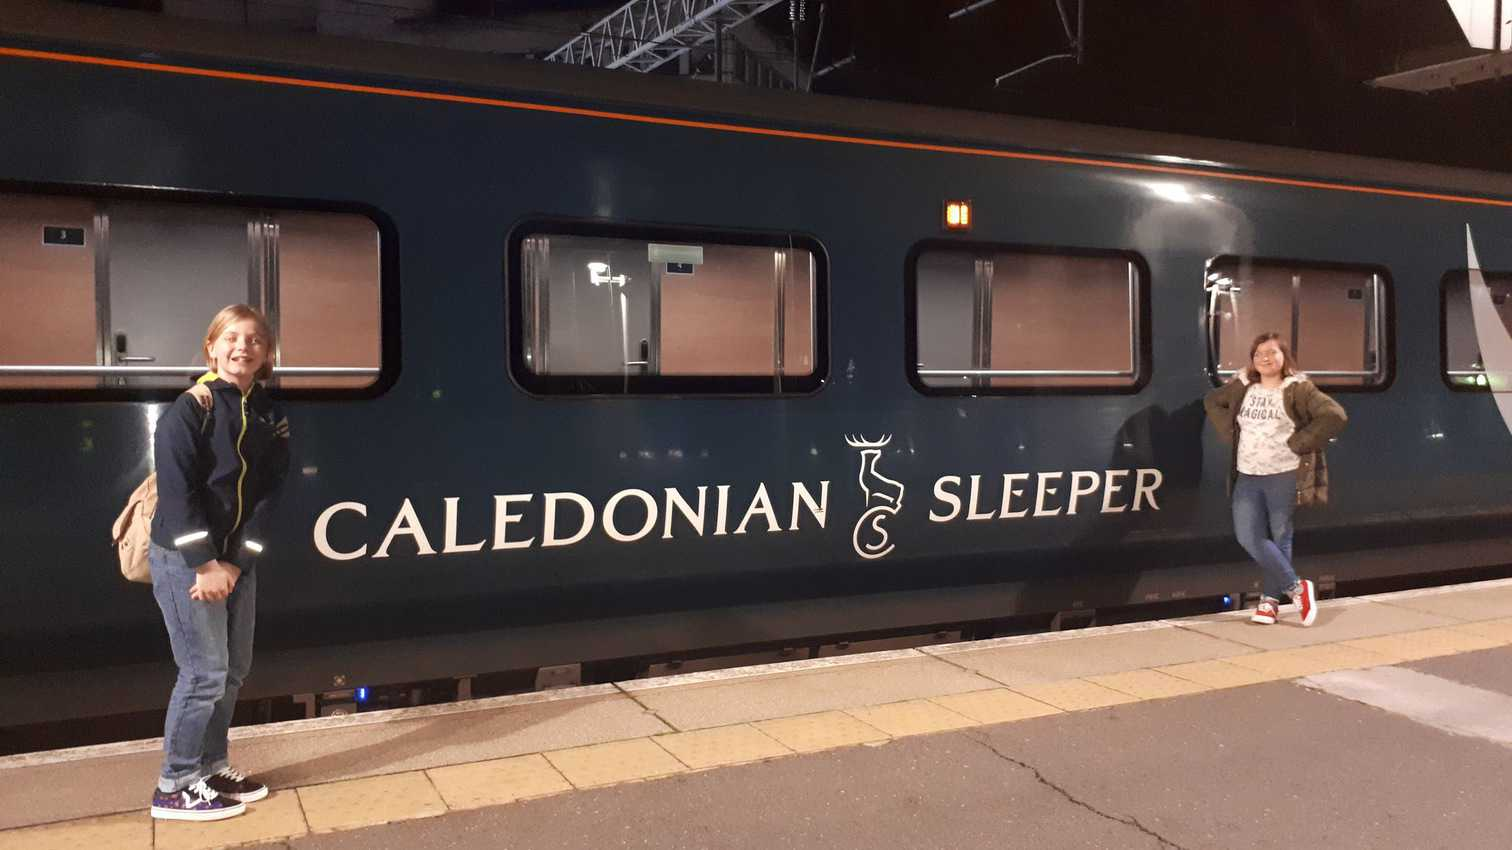 Outside one of the navy blue Caledonia Sleeper cars in the station.